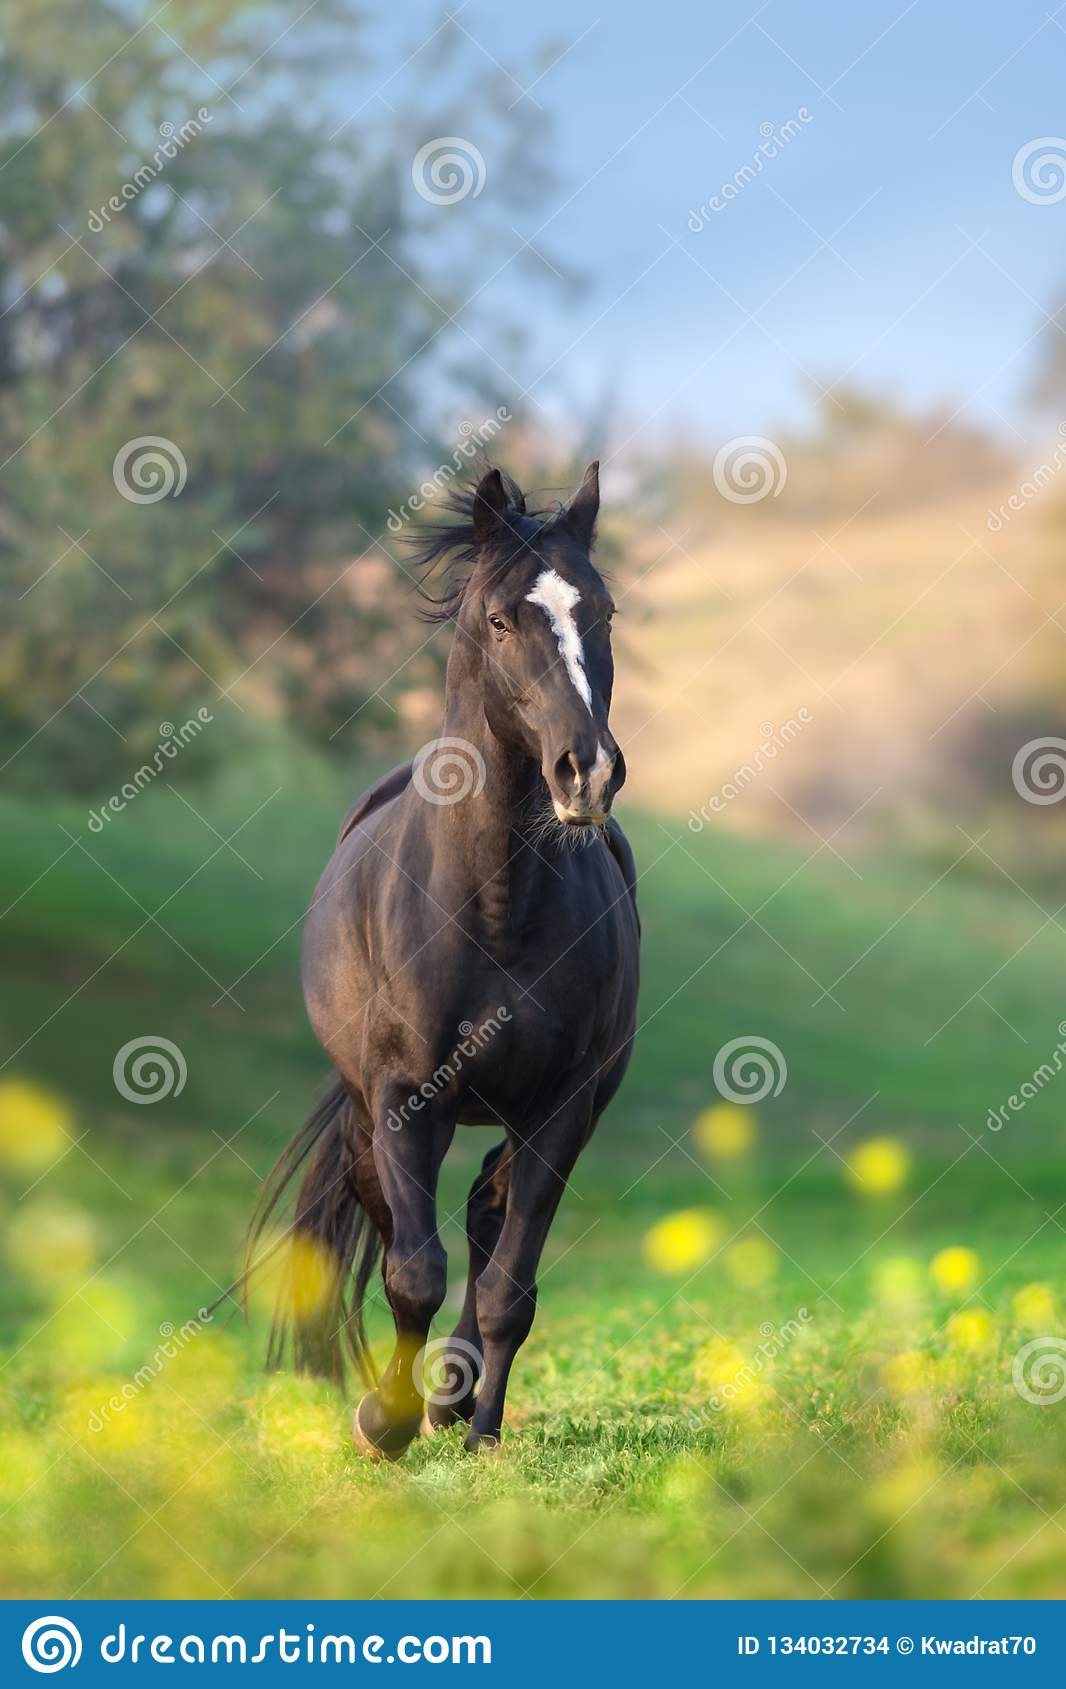 Horse on flowers